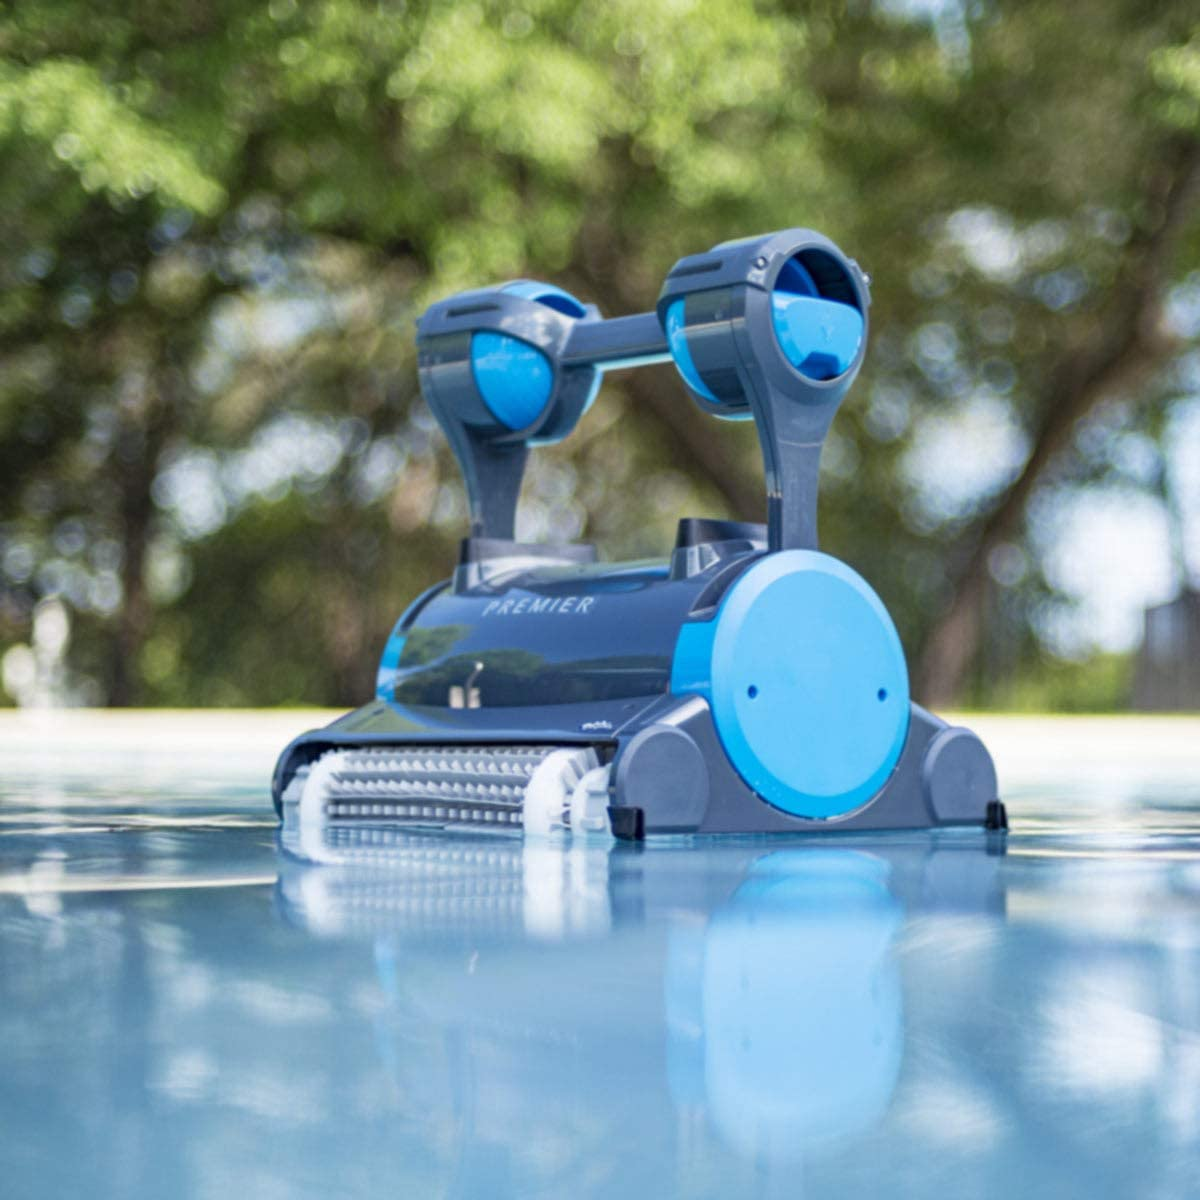 Best for beginners: Dolphin Premier Robotic Pool Cleaner